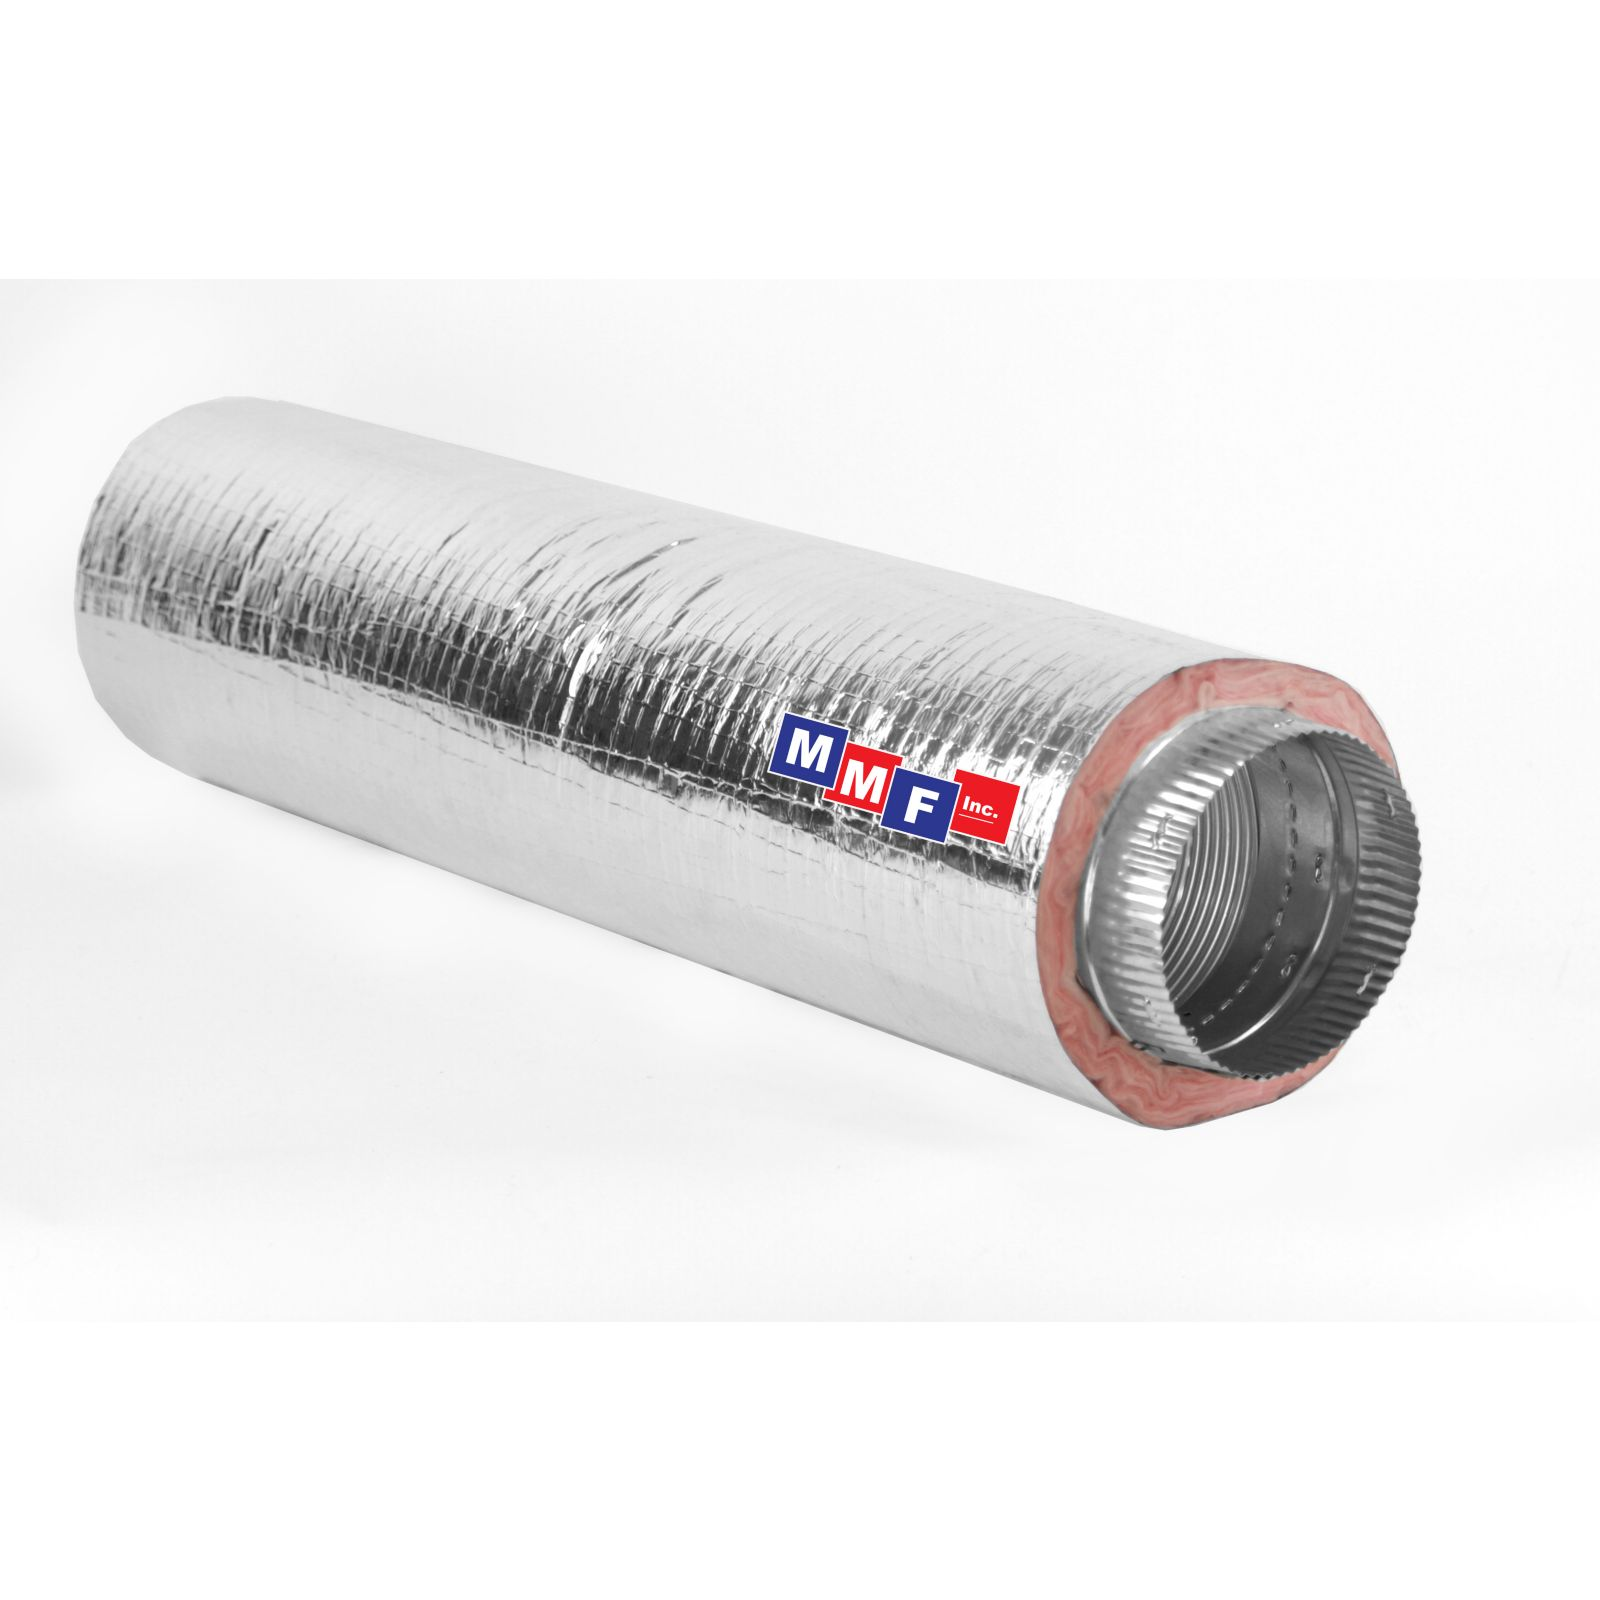 "Modular Metal MFHCM40616 - Aluminum Flex Pipe - (2) Collars 16"" Round X 6' Long - Fiberglass Insulated - Silver Jacket"